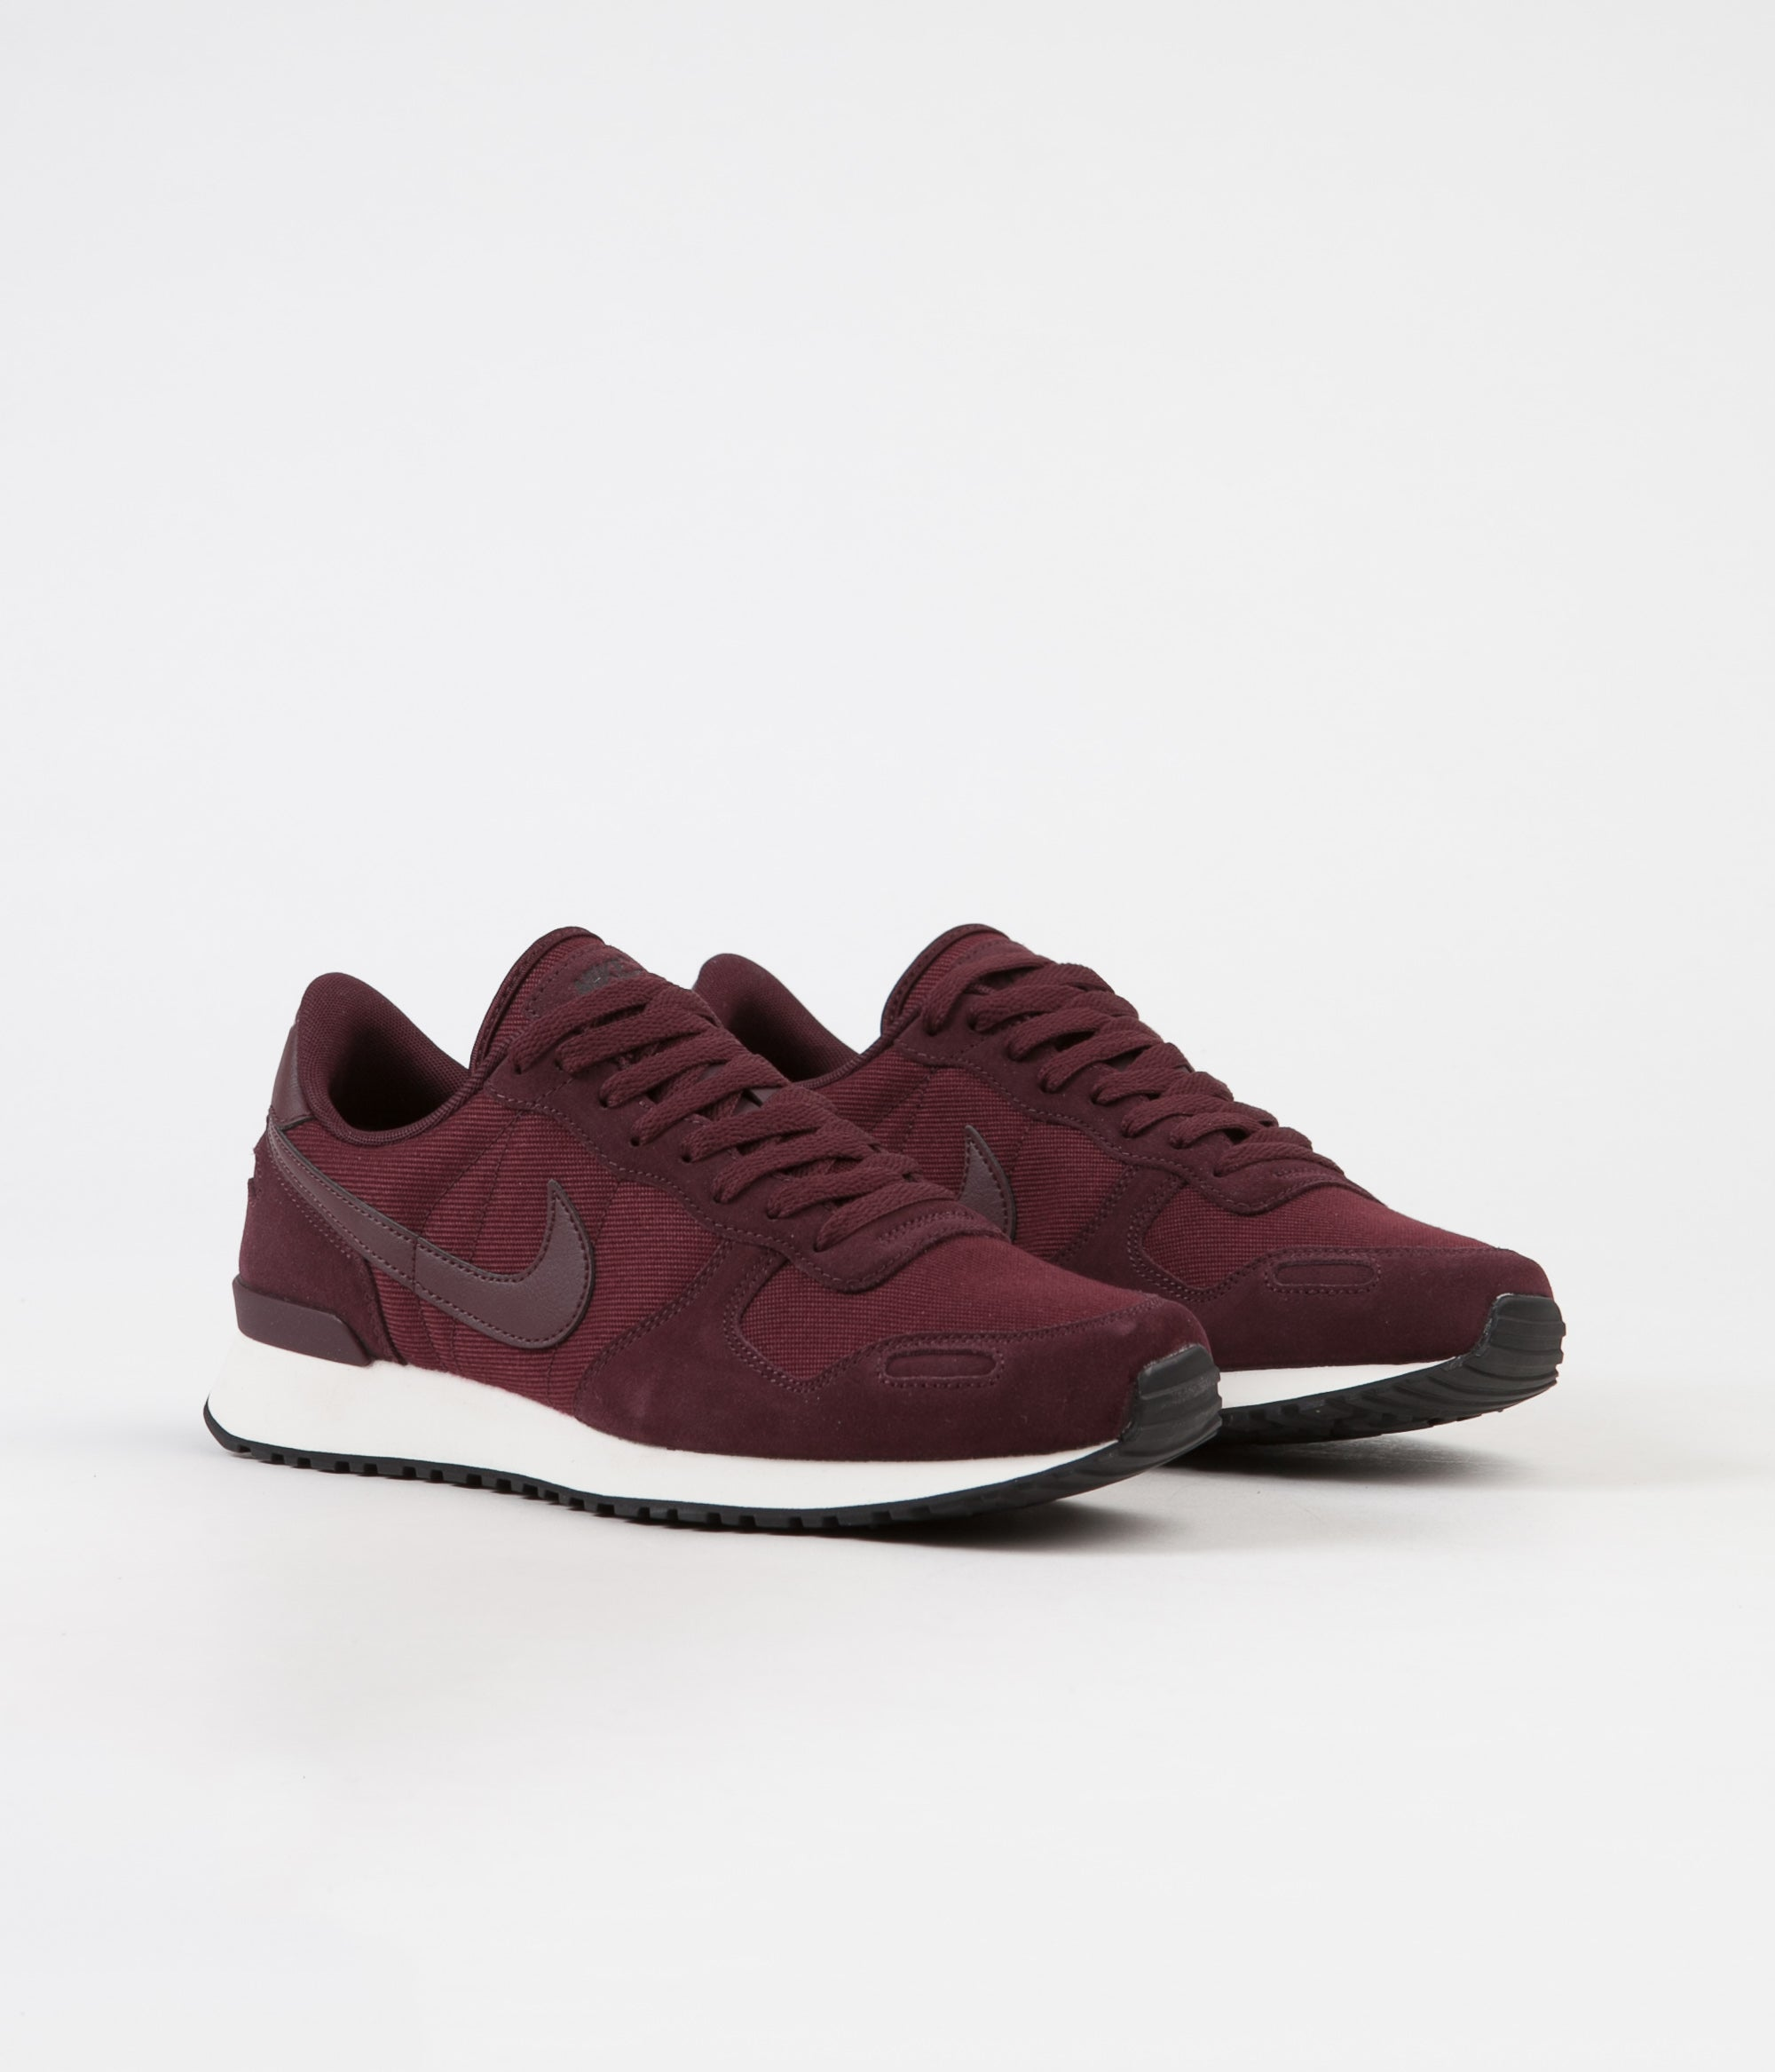 size 40 6b450 d4b87 ... Nike Air Vortex Leather Shoes - Burgundy Crush  Burgundy Crush - Sail  - Black ...